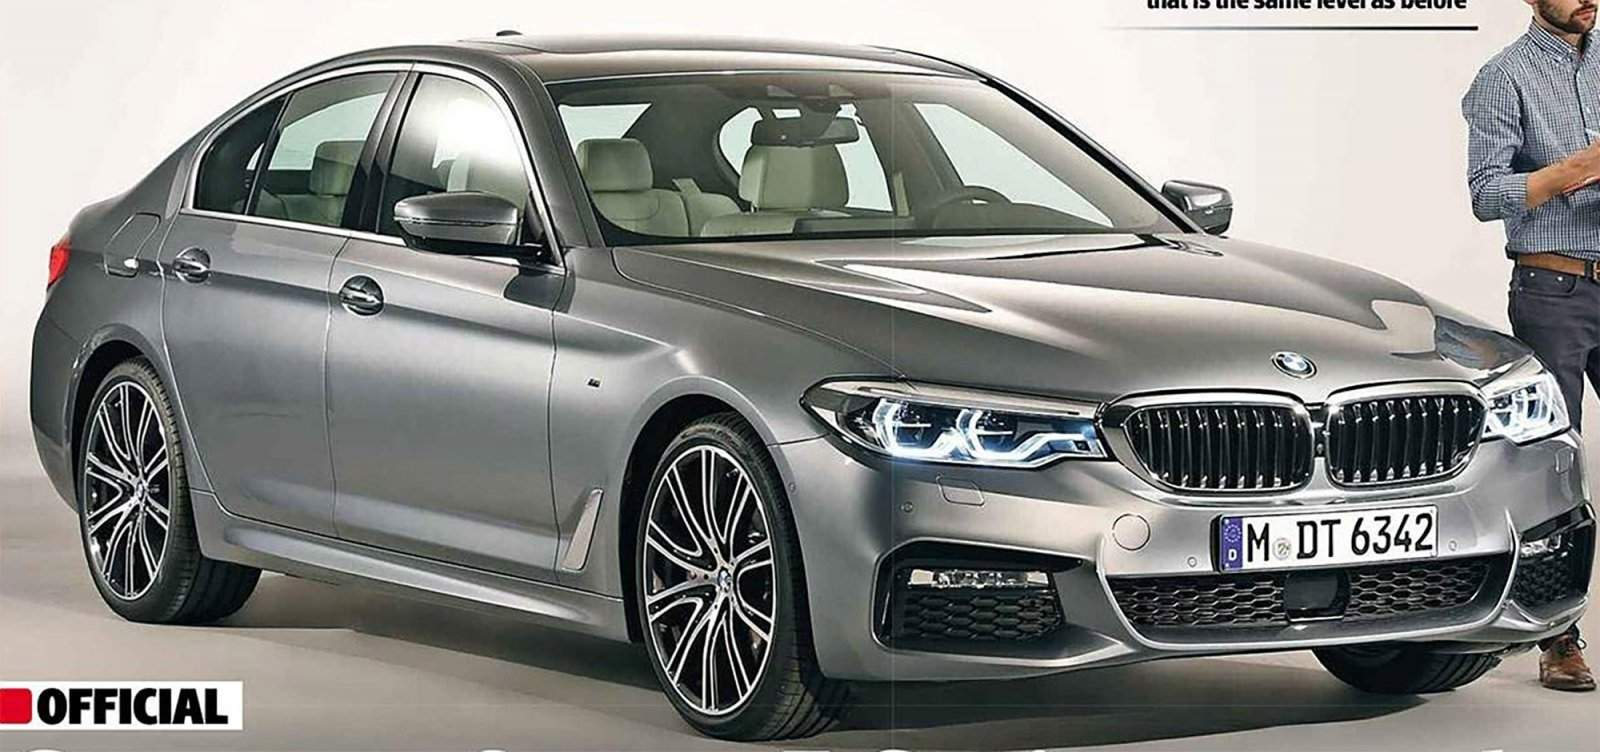 Leaked Images Of The New 5 Series G30